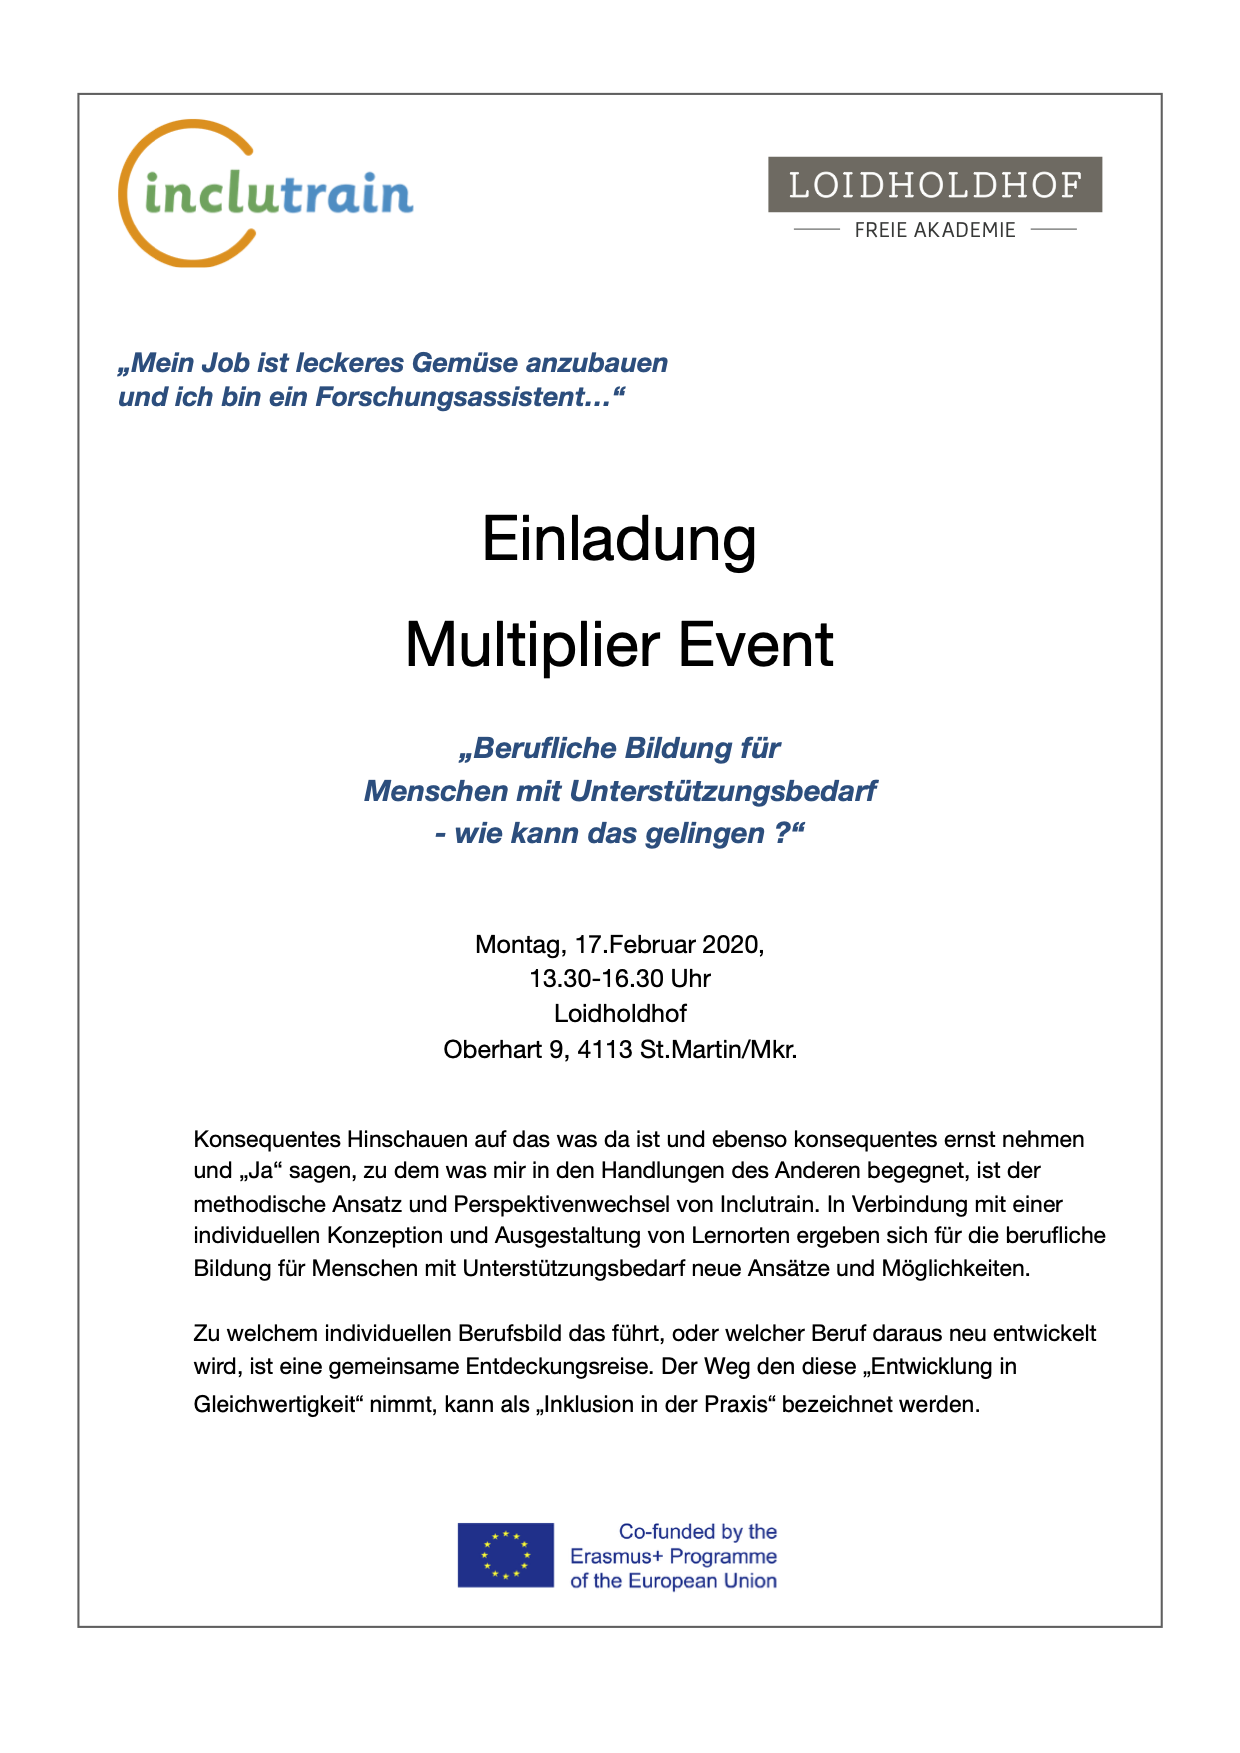 Multiplier Event Loidholdhof_1.png